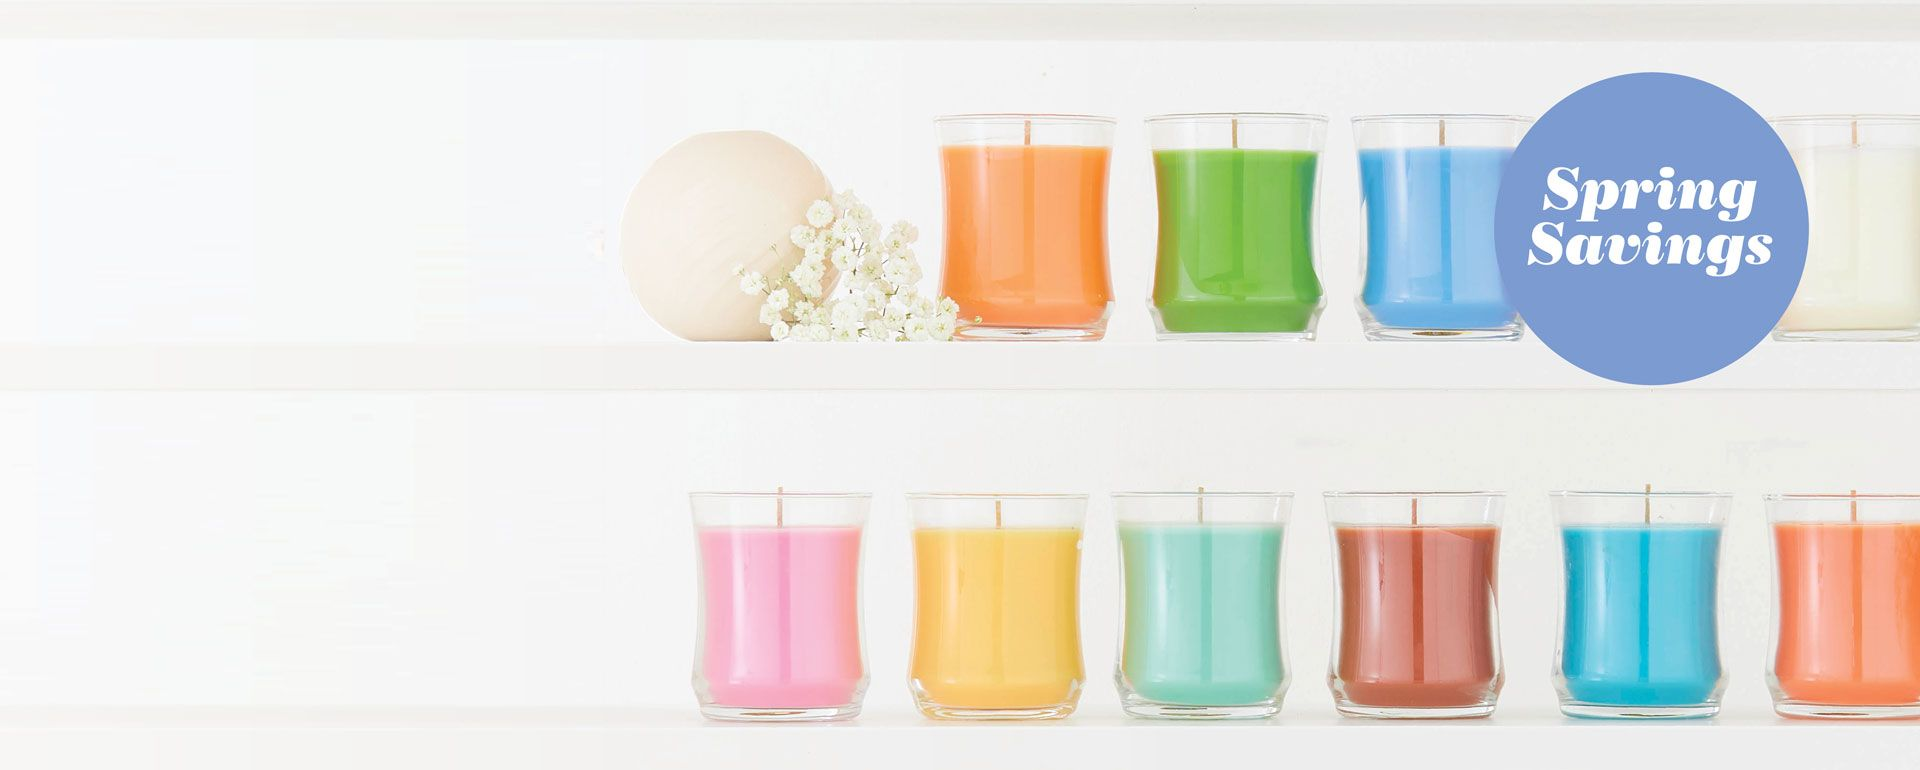 Partylite Uk Hello January New Year New Ideas Candles Home Fragrance Home Decor Homes Design Scented Candles Fragrance Cool Things To Buy Home Fragrance